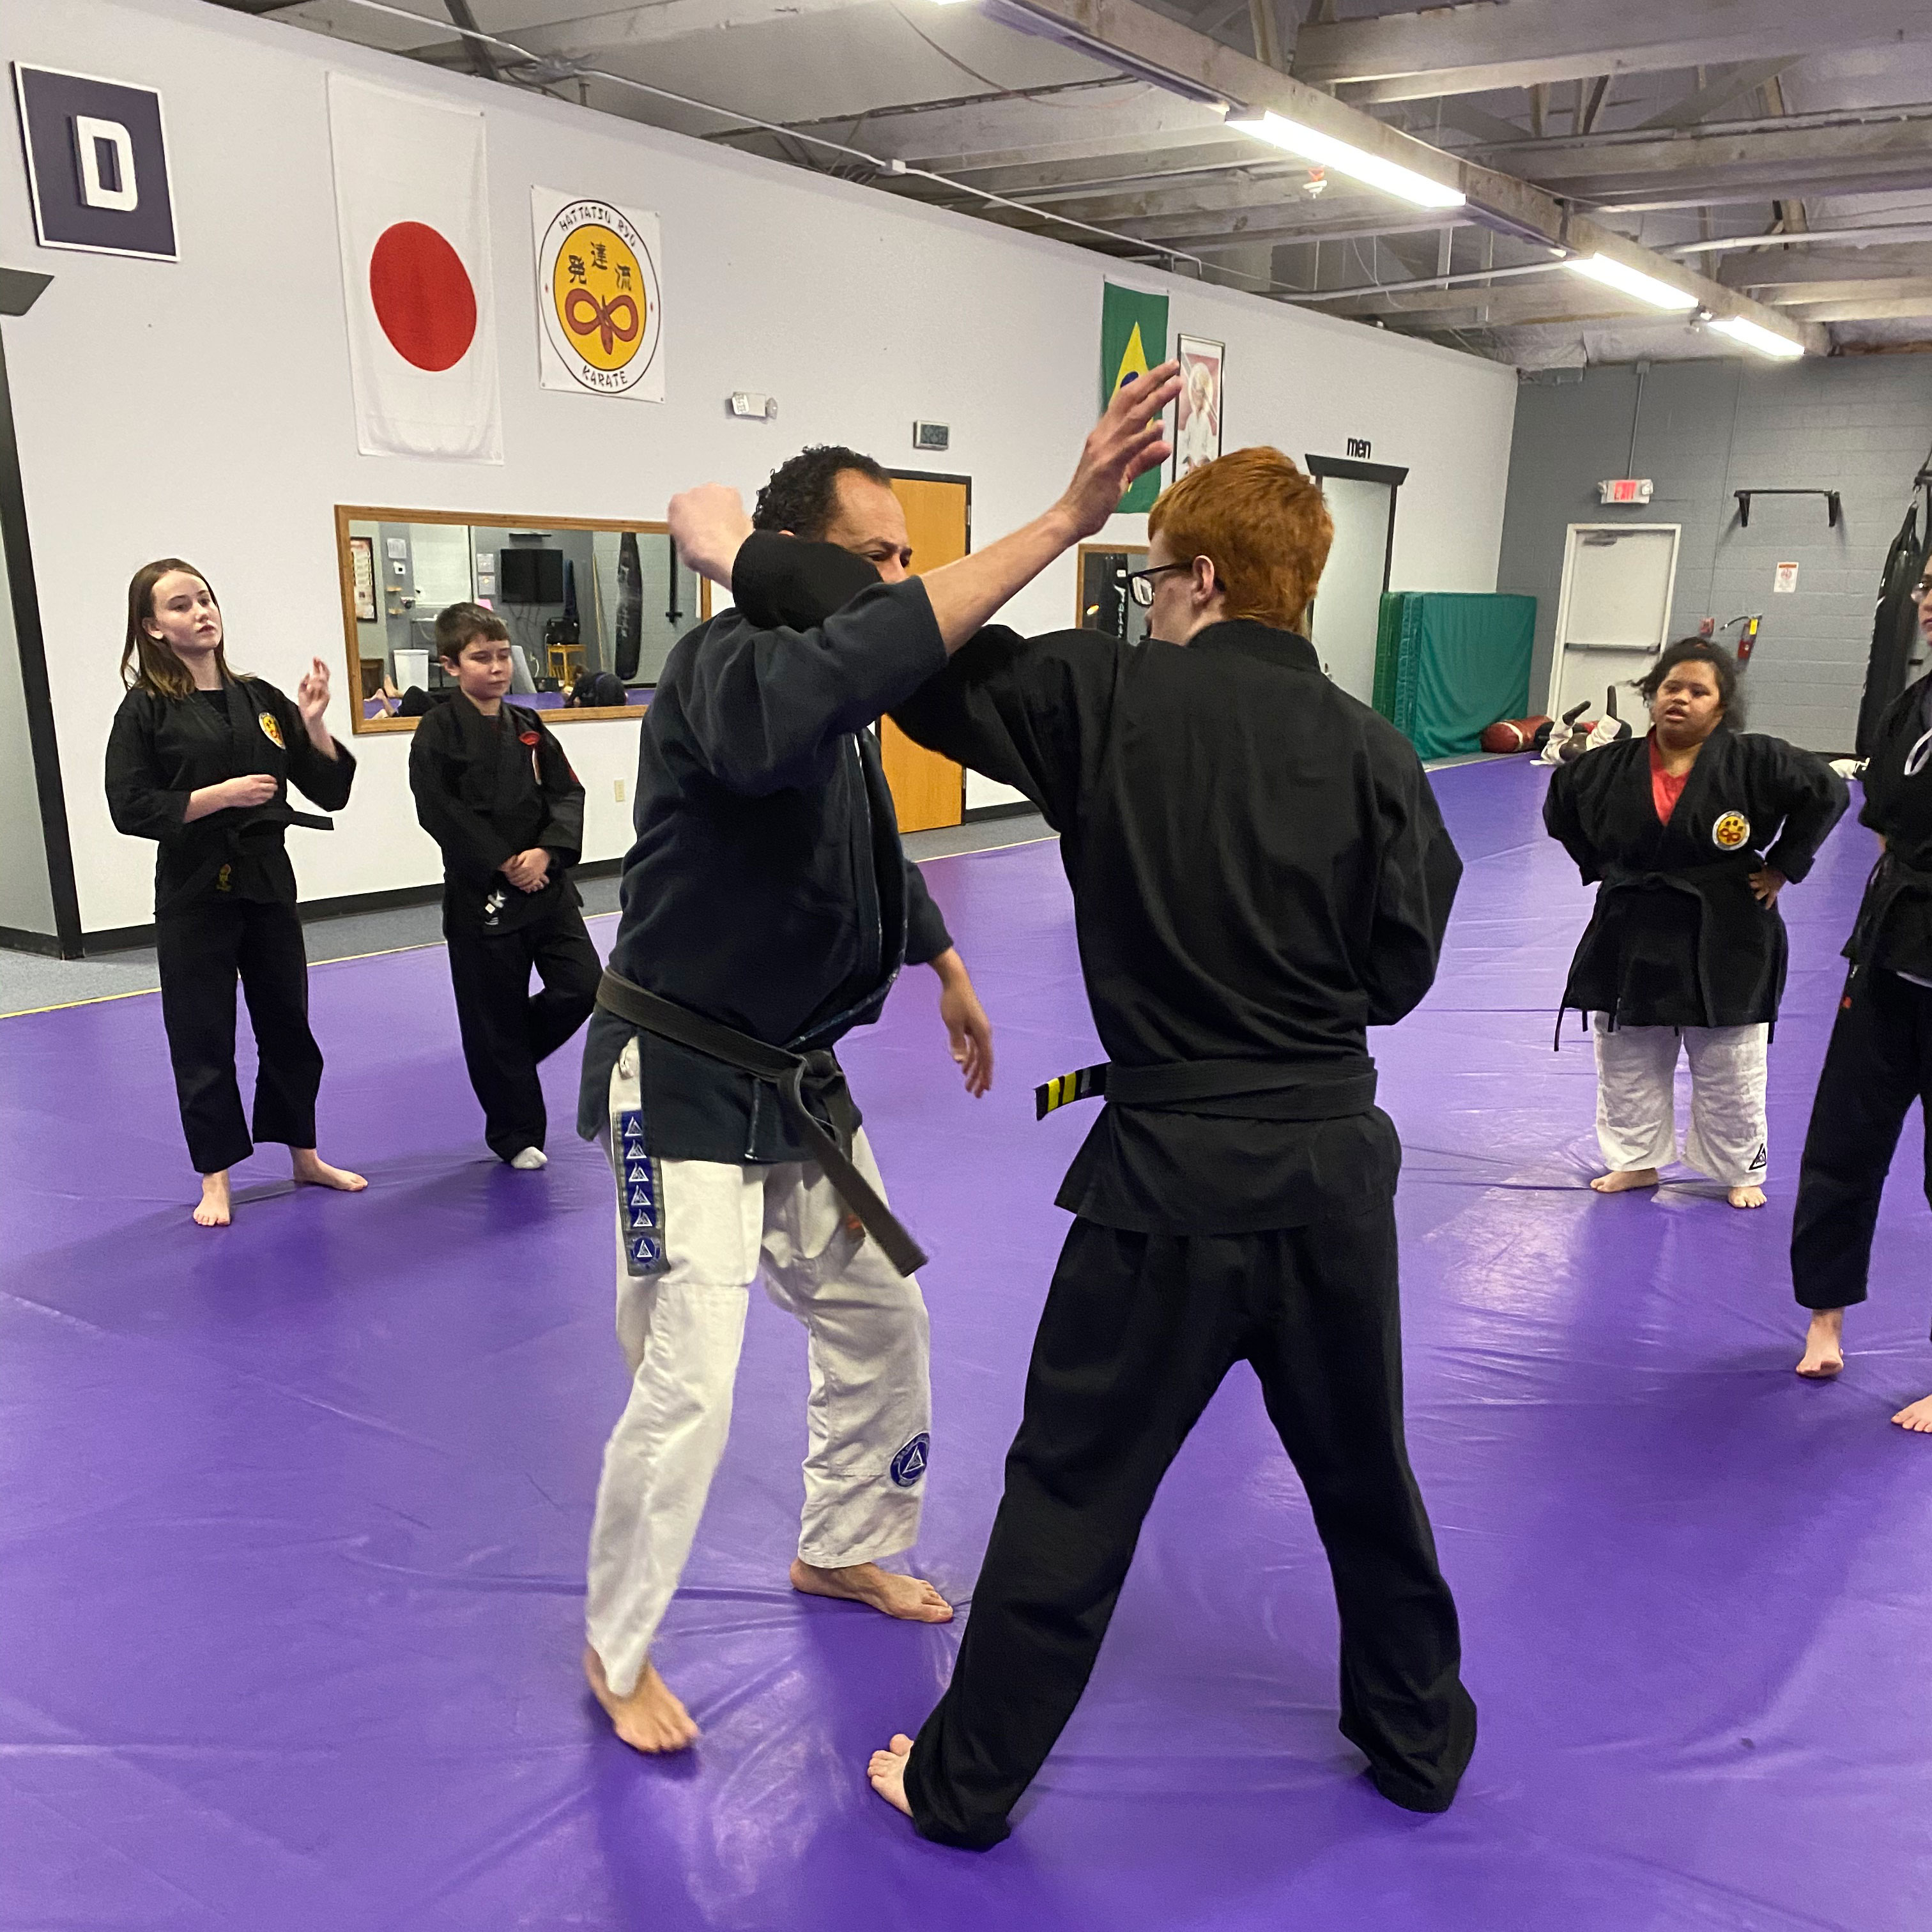 Kids blocking instructor's punch in kids martial arts class